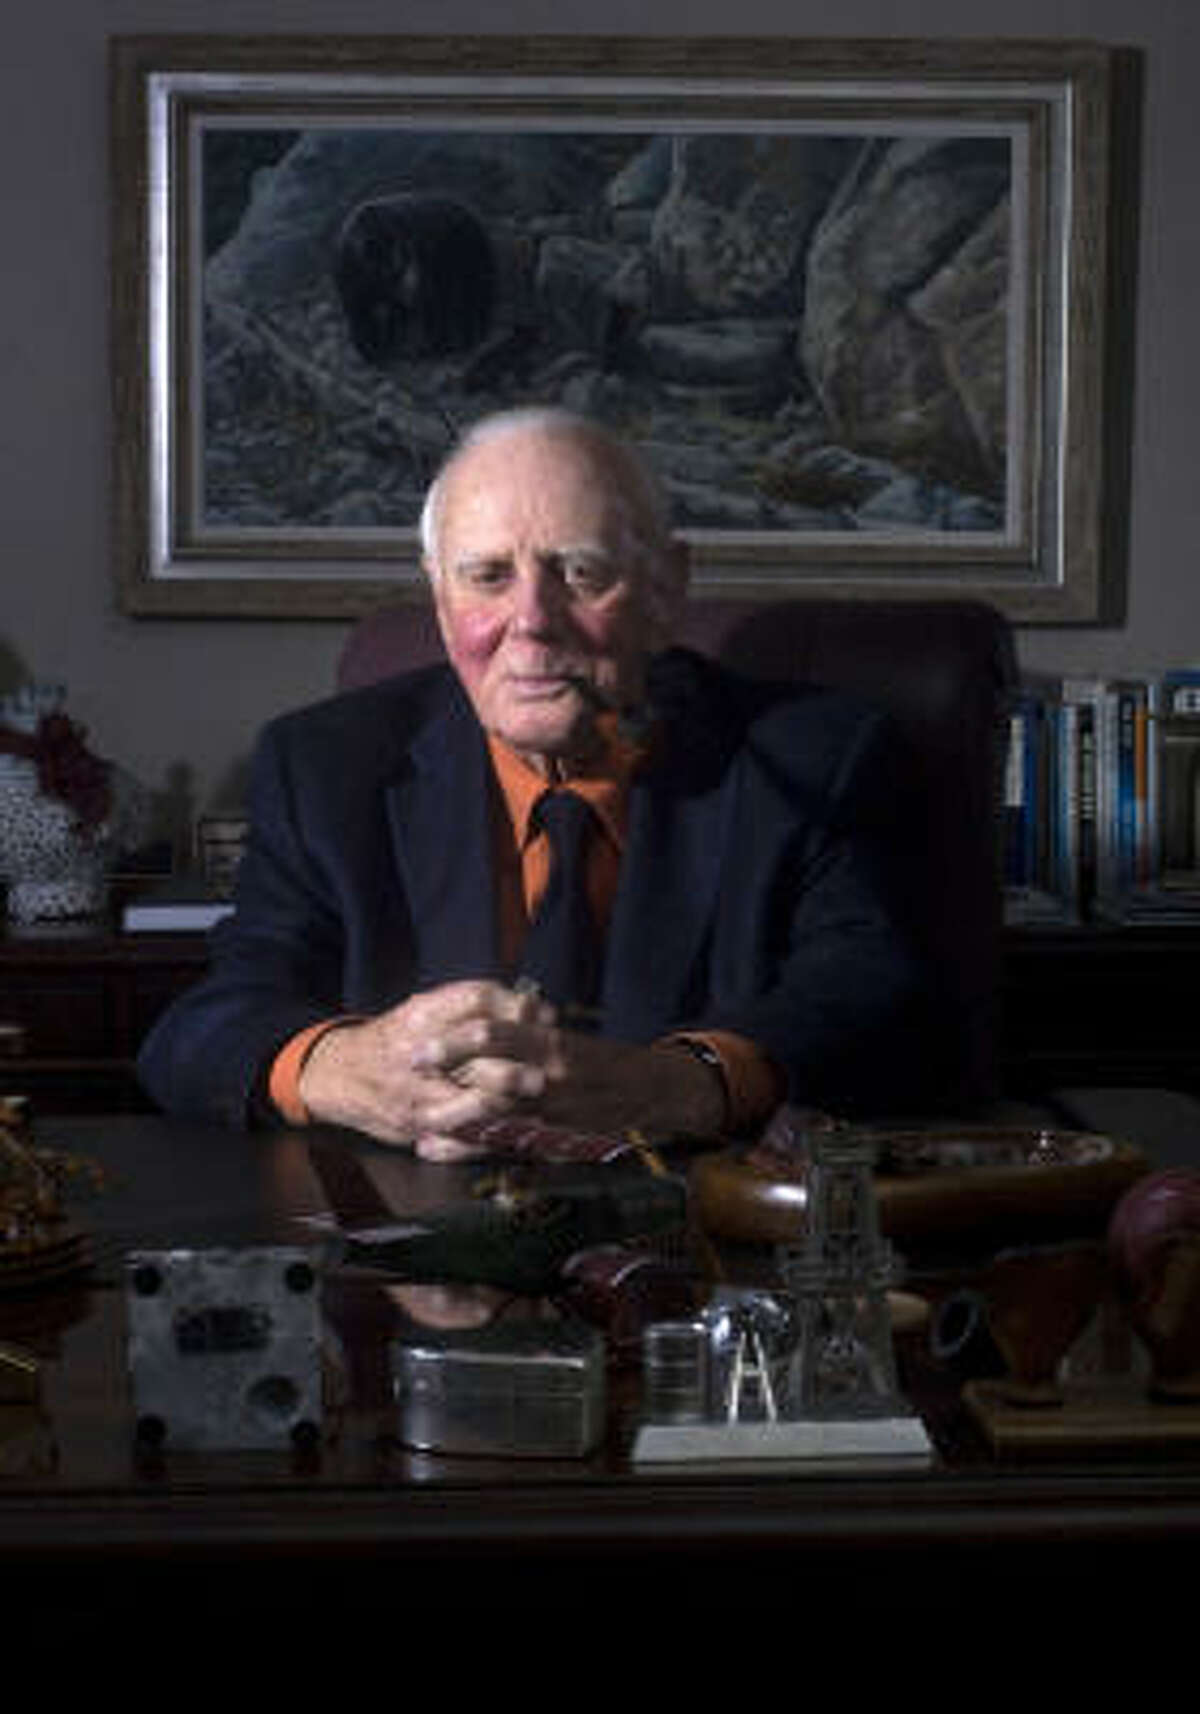 Raymond Plank started Apache Corp. in 1954 from initial seed capital of $250,000 and grew it to a successful Houston-based independent oil and gas producer. >>REST IN PEACE: Houstonians we have lost this year